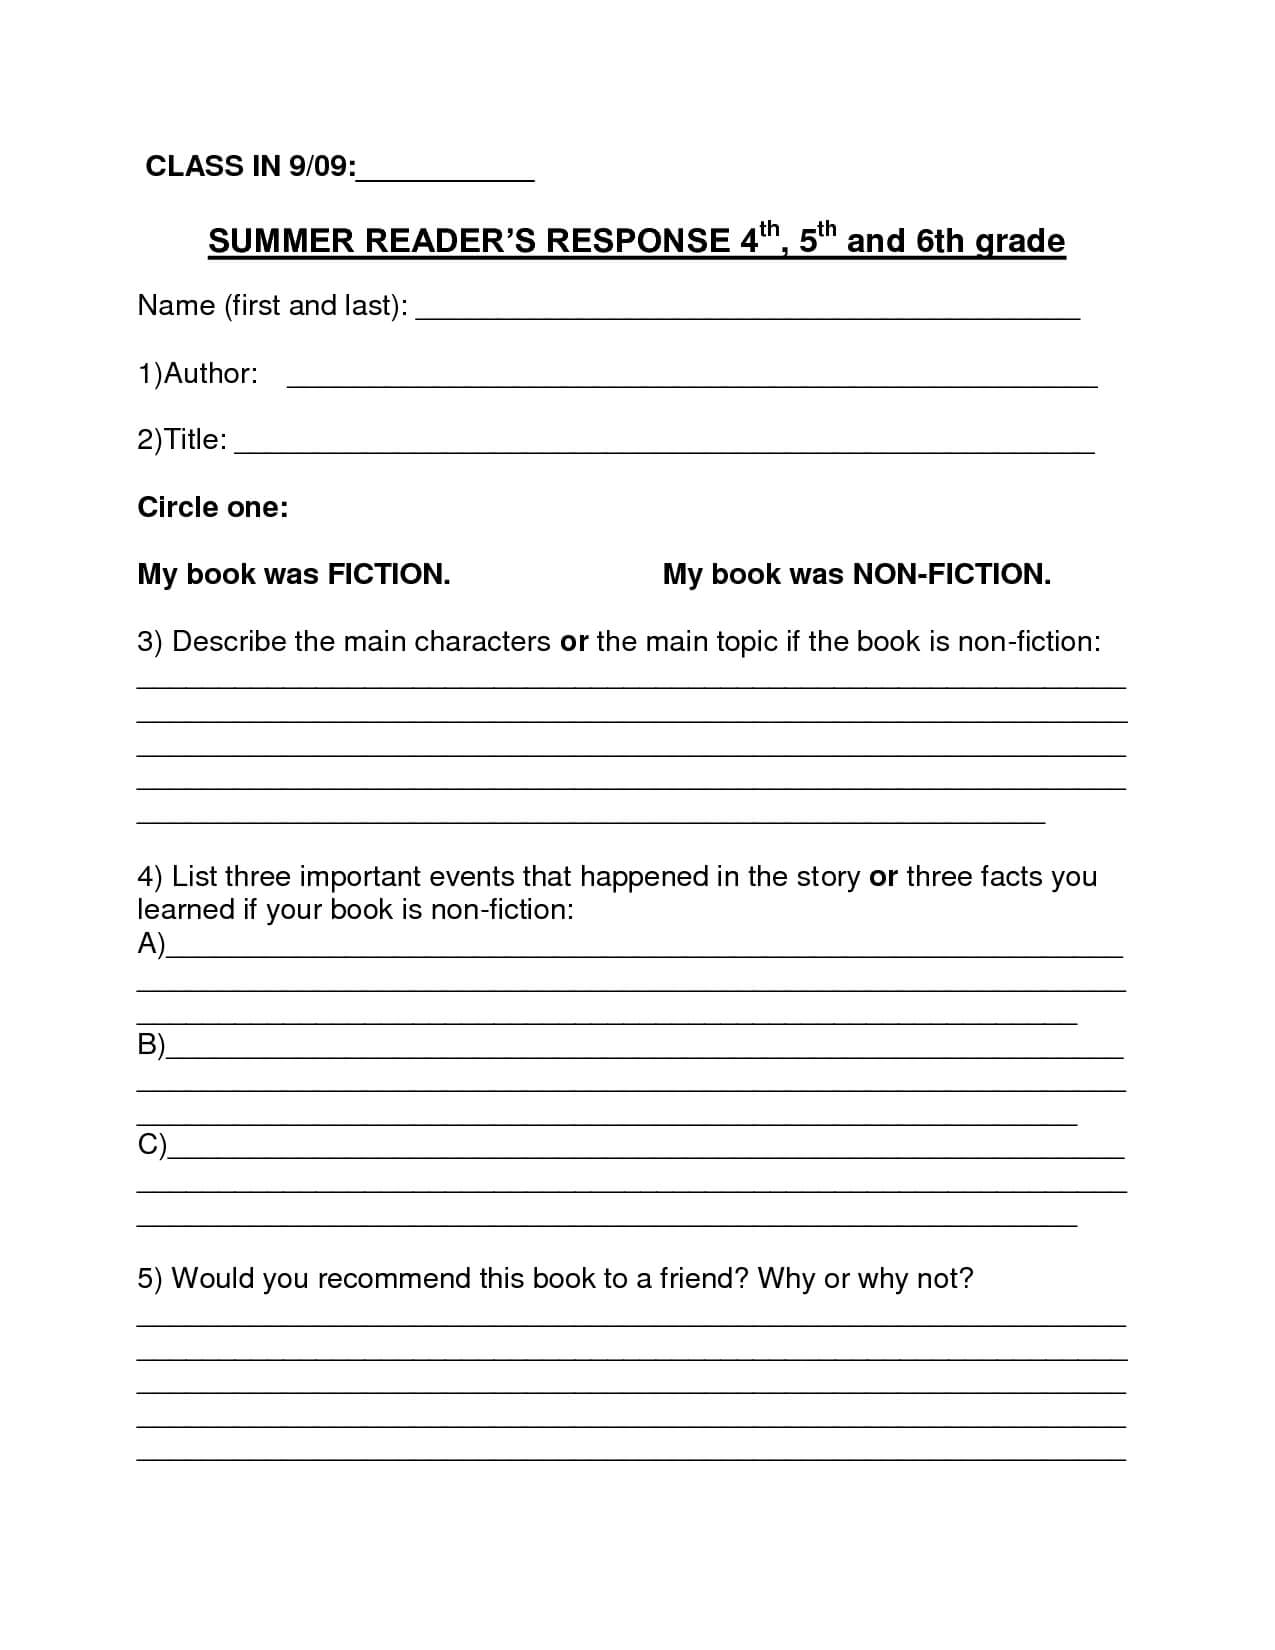 Book Report Template | Summer Book Report 4Th  6Th Grade For 6Th Grade Book Report Template